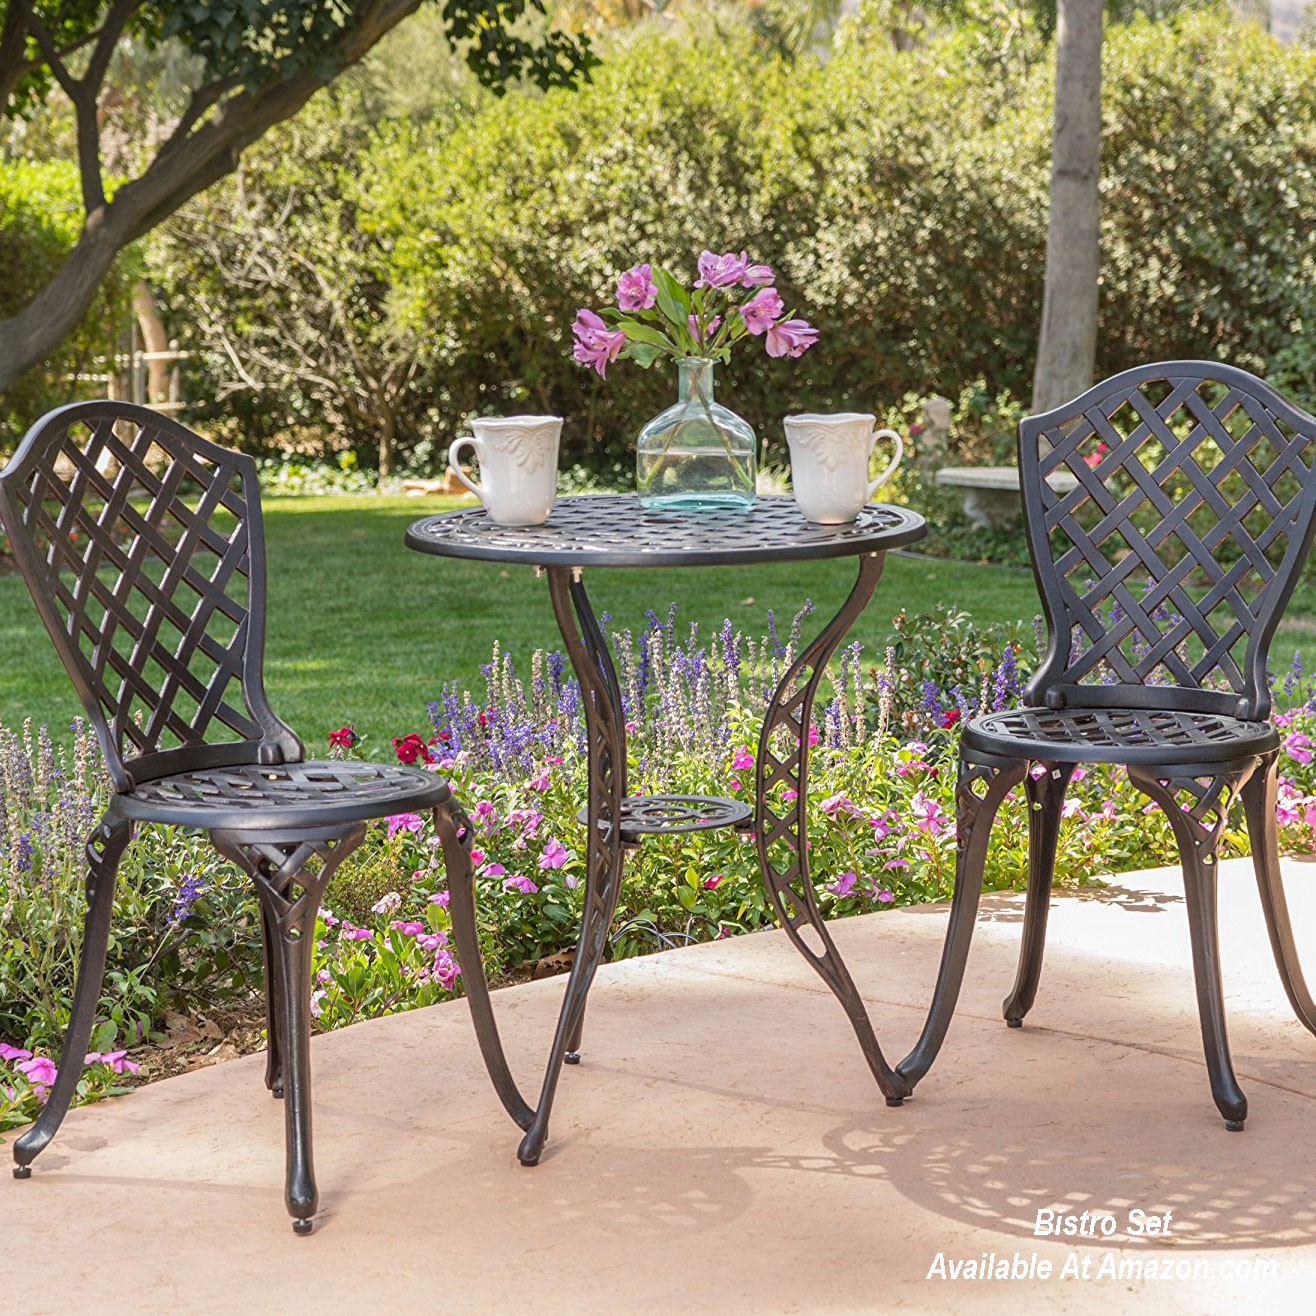 Amazing Bistro set fits in a small space